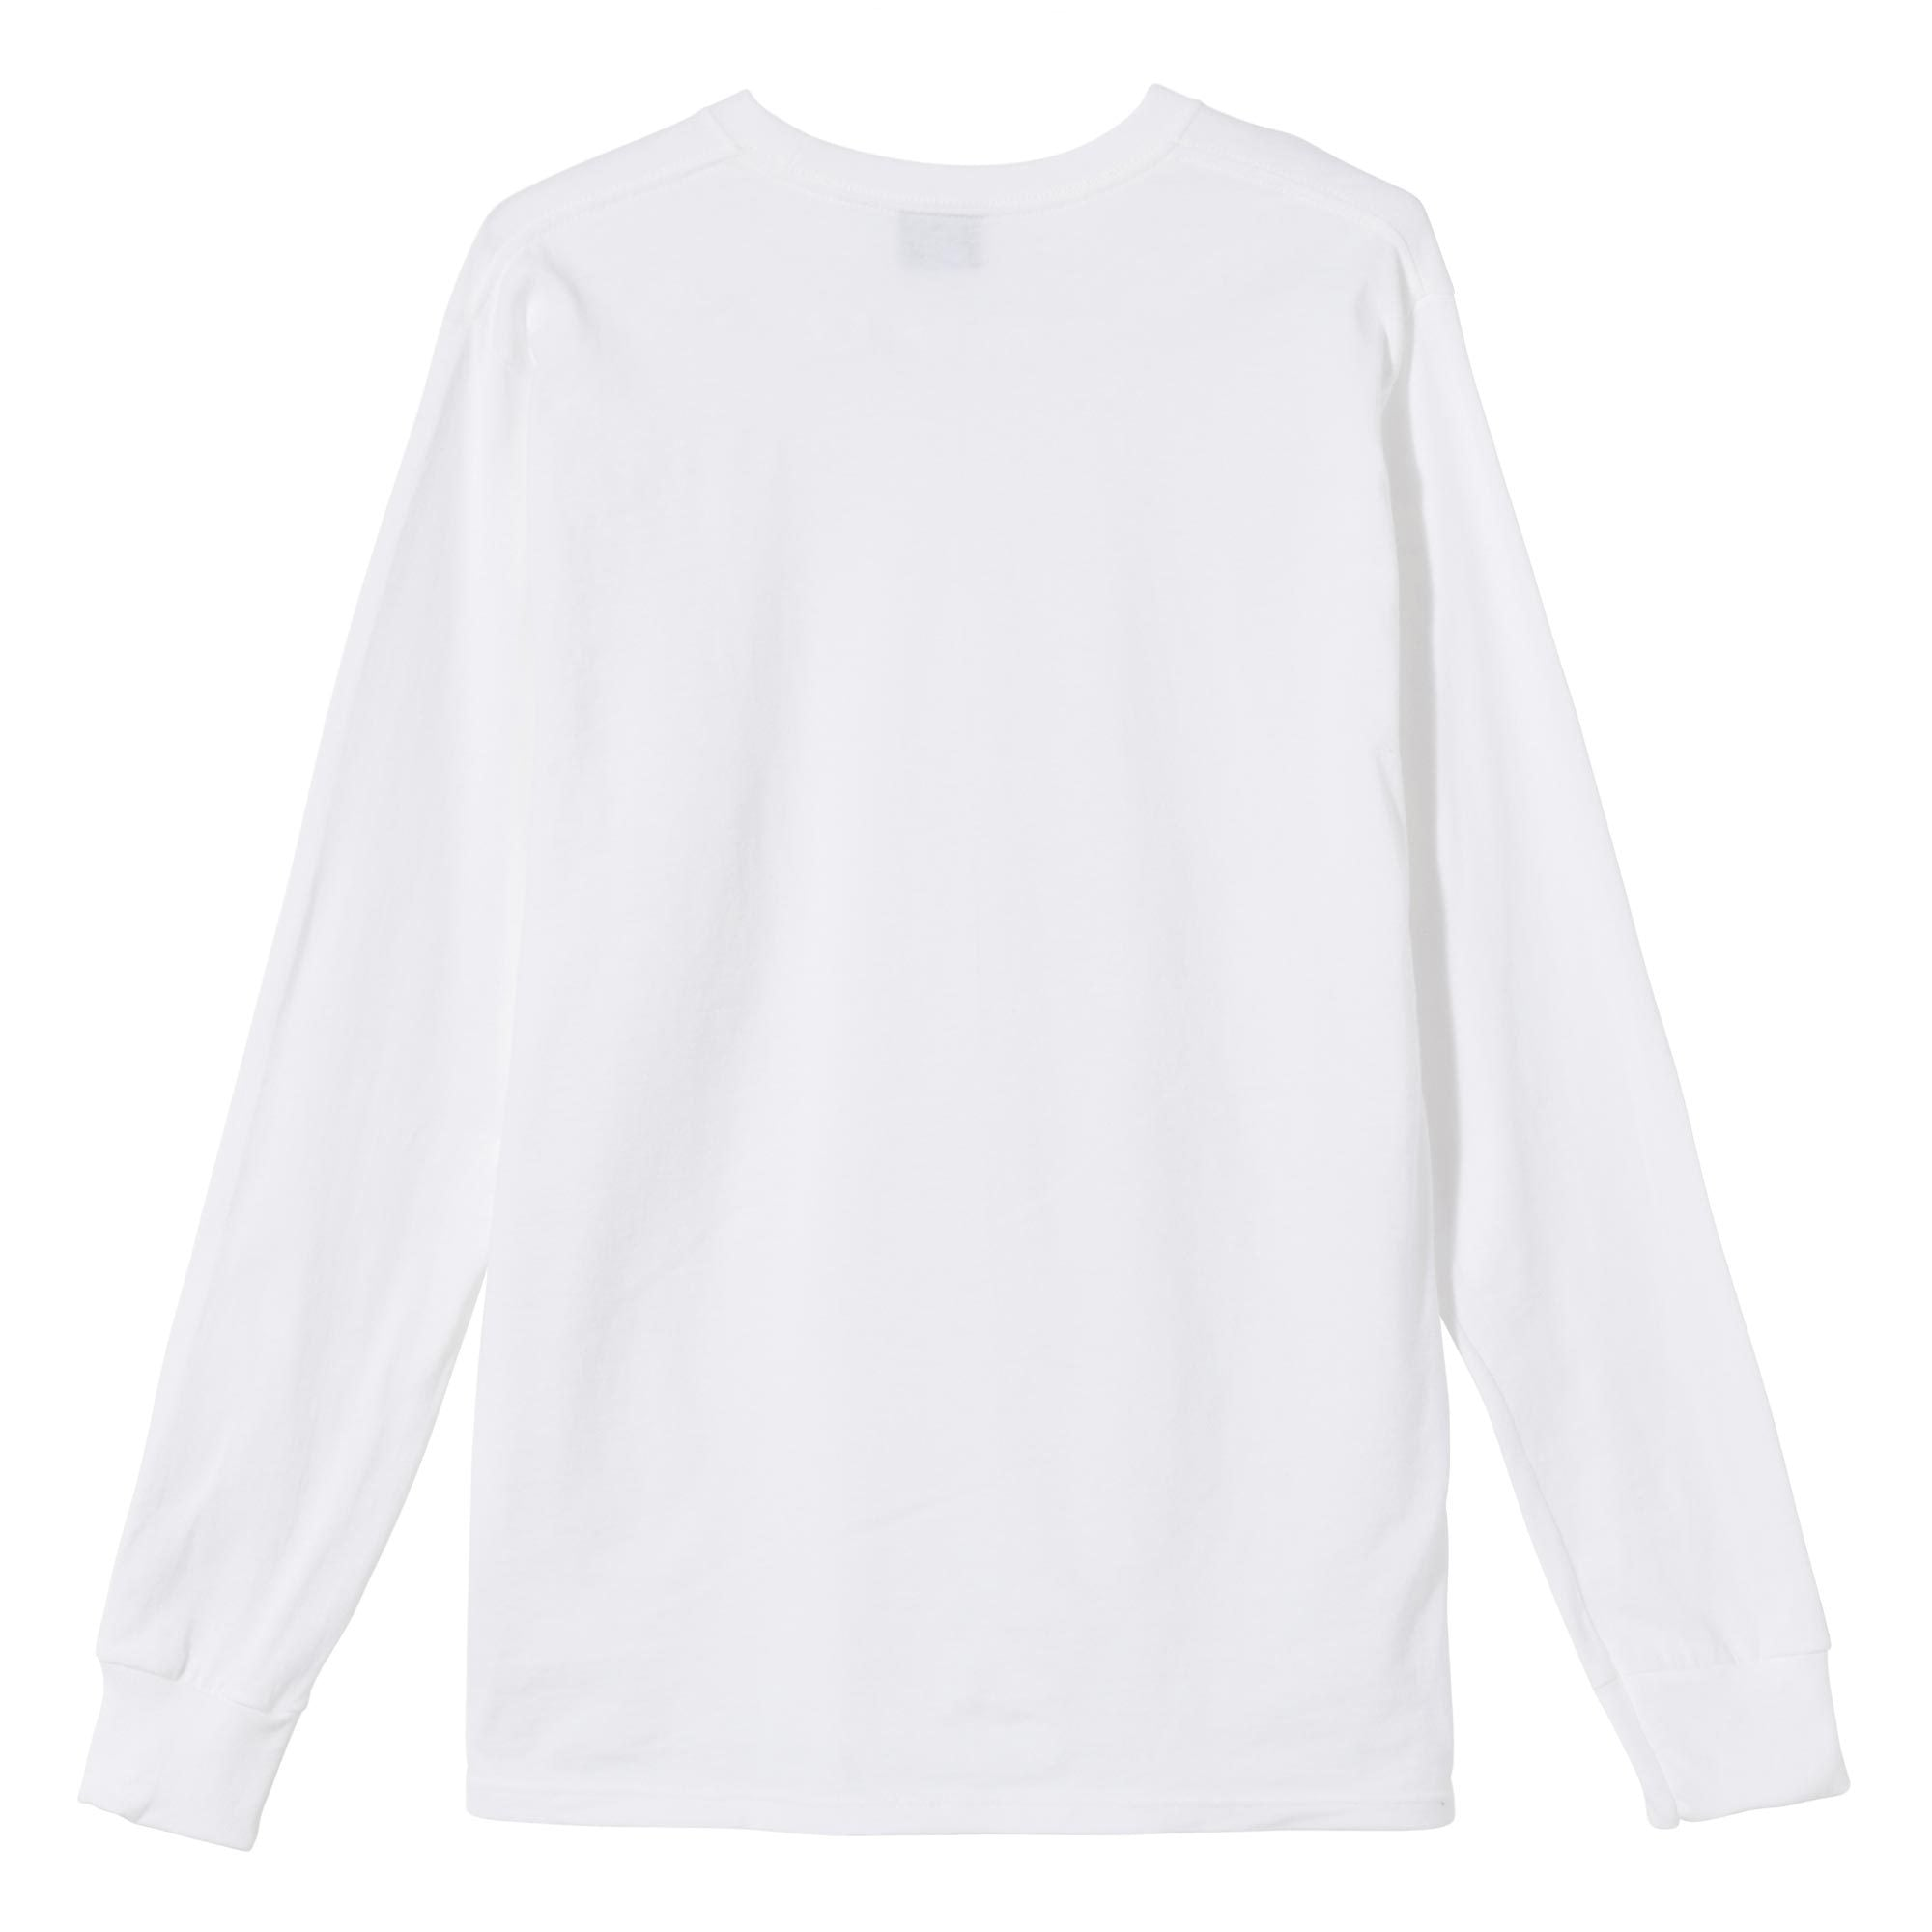 Stussy Metamorphis Long Sleeve Tee White